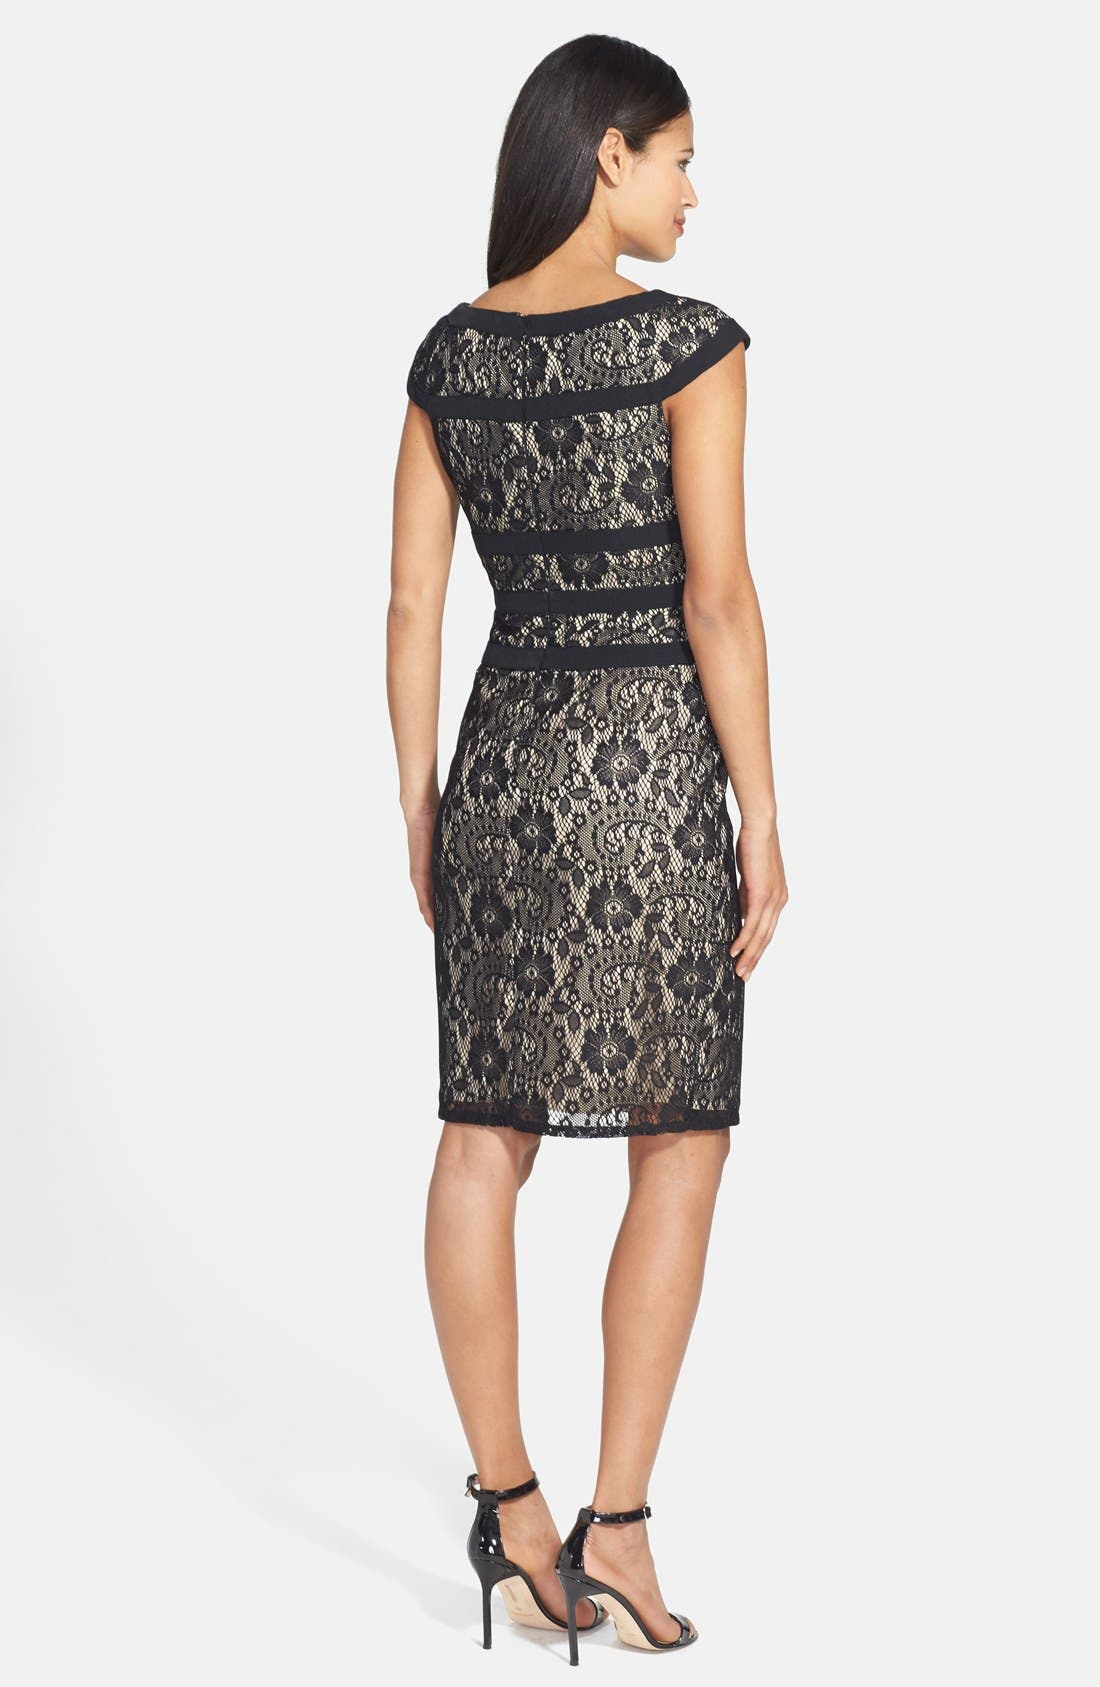 ADRIANNA PAPELL, Lace Sheath Dress, Alternate thumbnail 4, color, 001